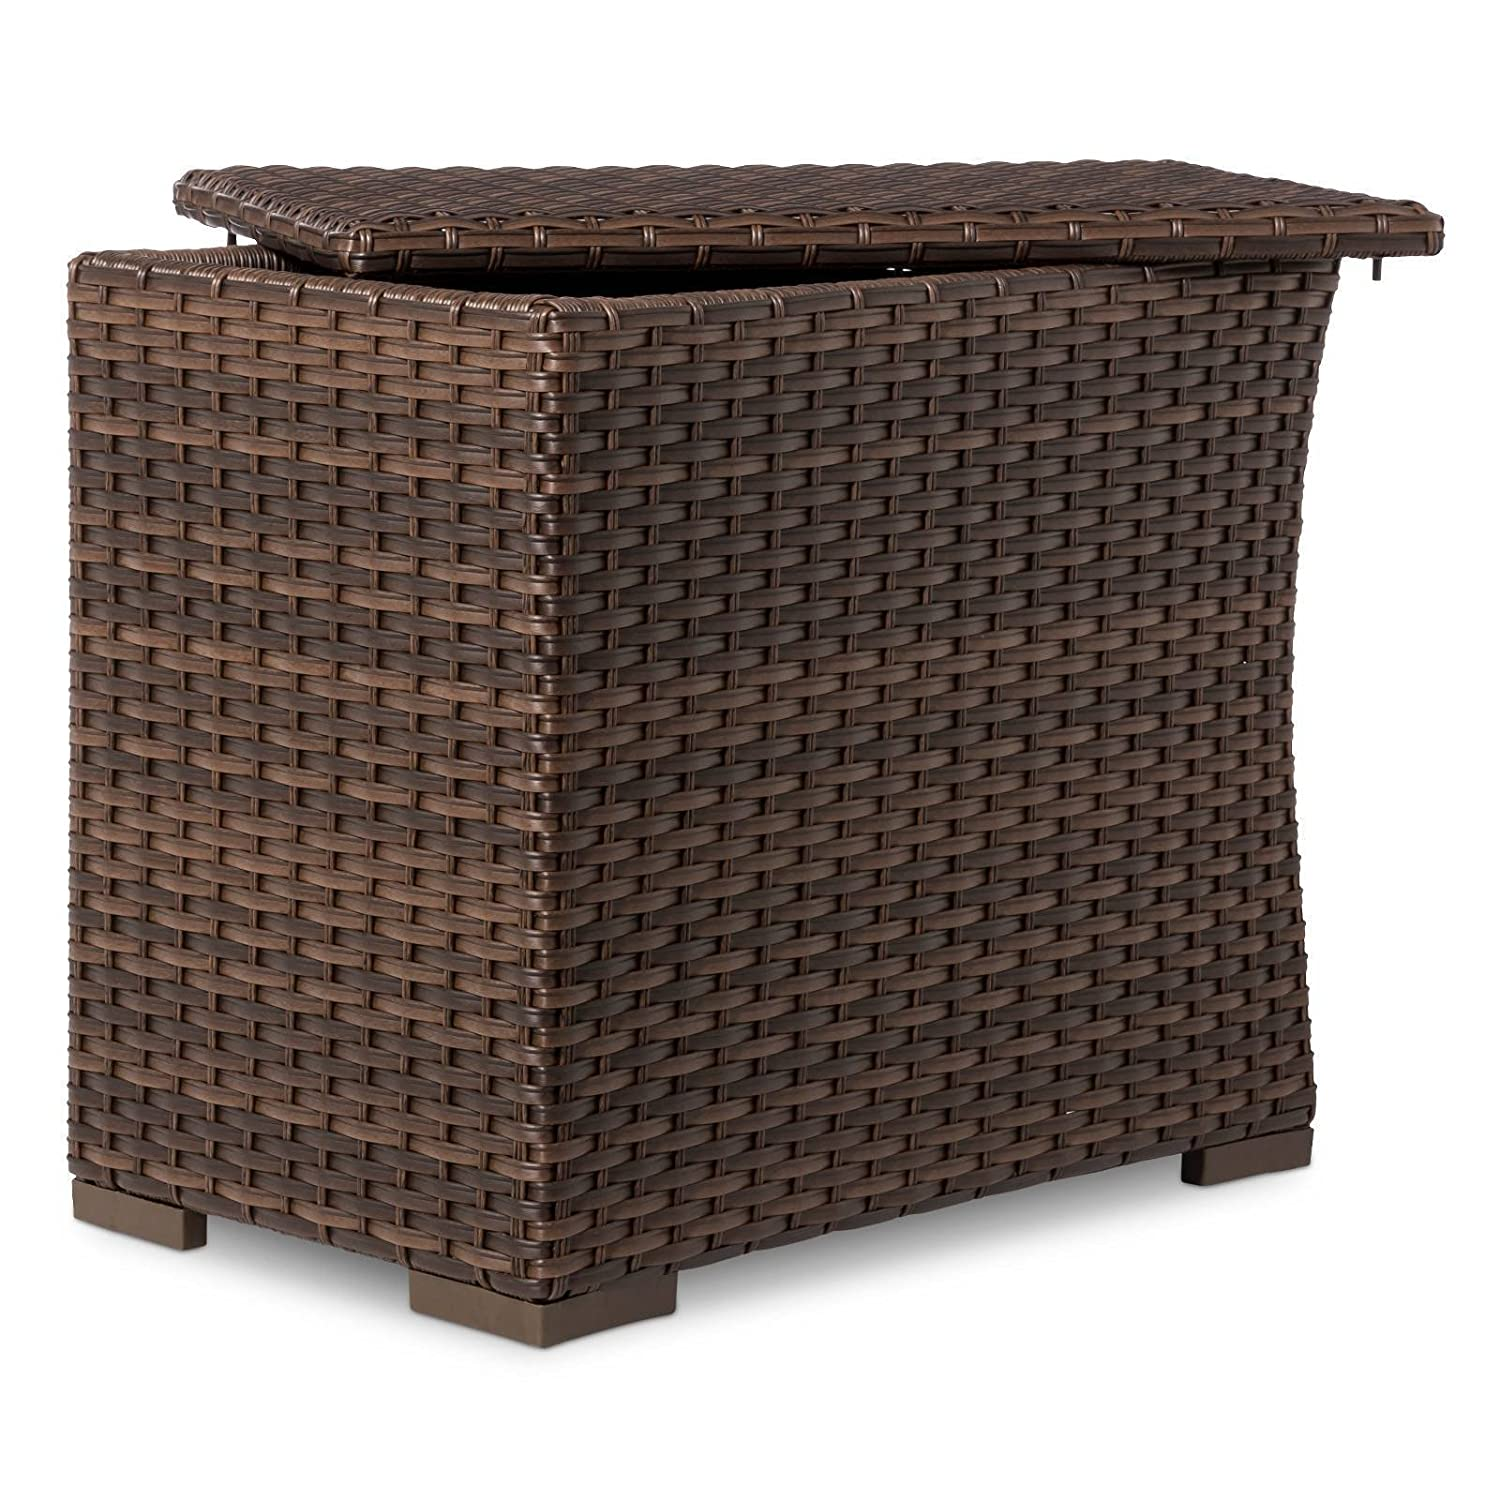 Amazon com halsted wicker patio sectional side table garden outdoor